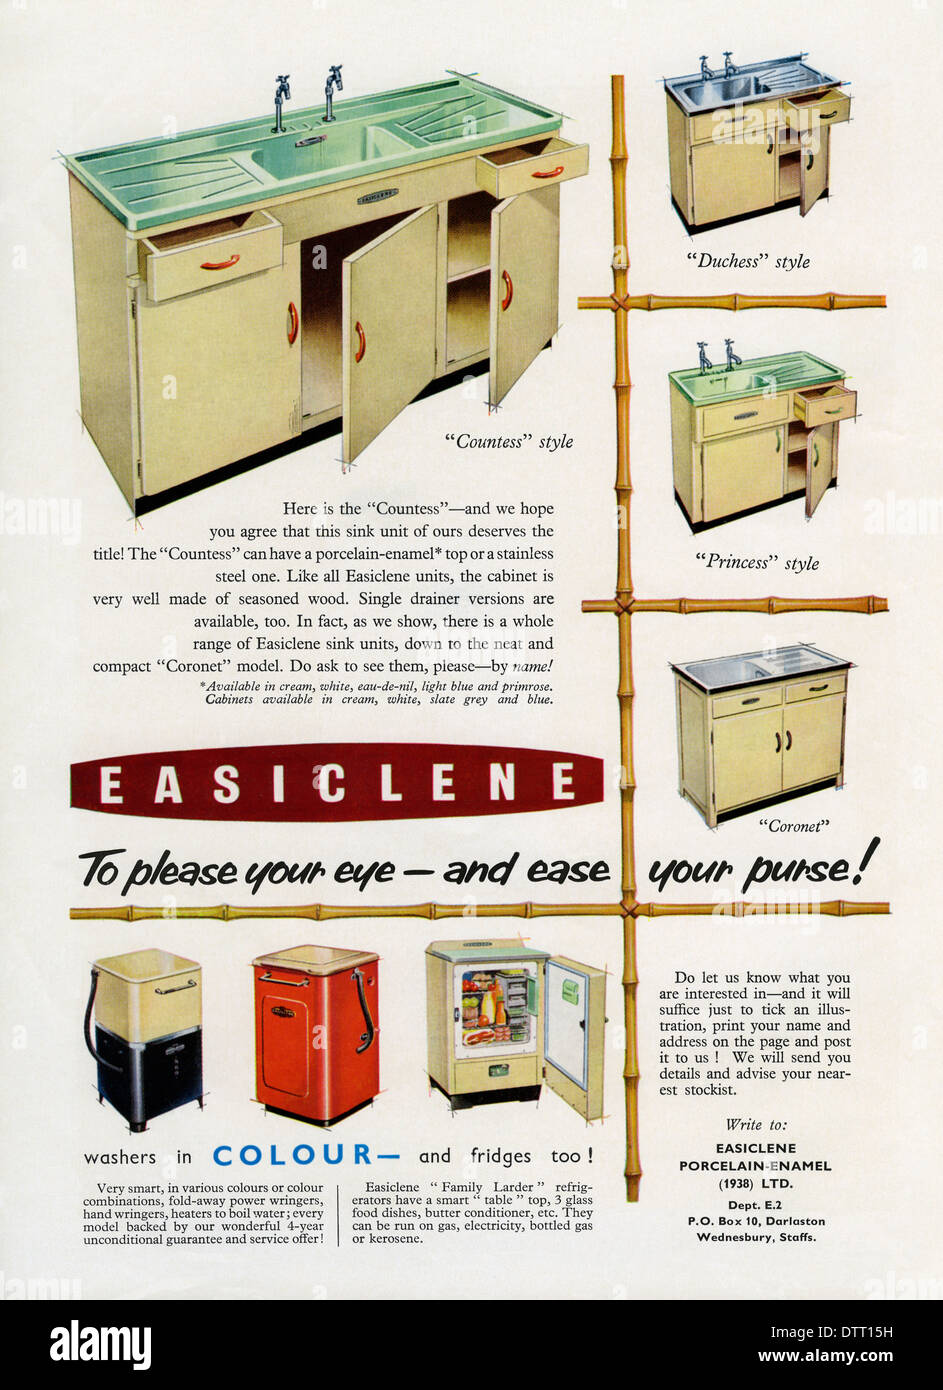 Kitchen Sink Appliances futuristic kitchen appliances beauteous kitchen sink appliances new kitchen sink appliances Old Advert For Easiclene Easy Clean Kitchen Sink Units And Appliances The Advert